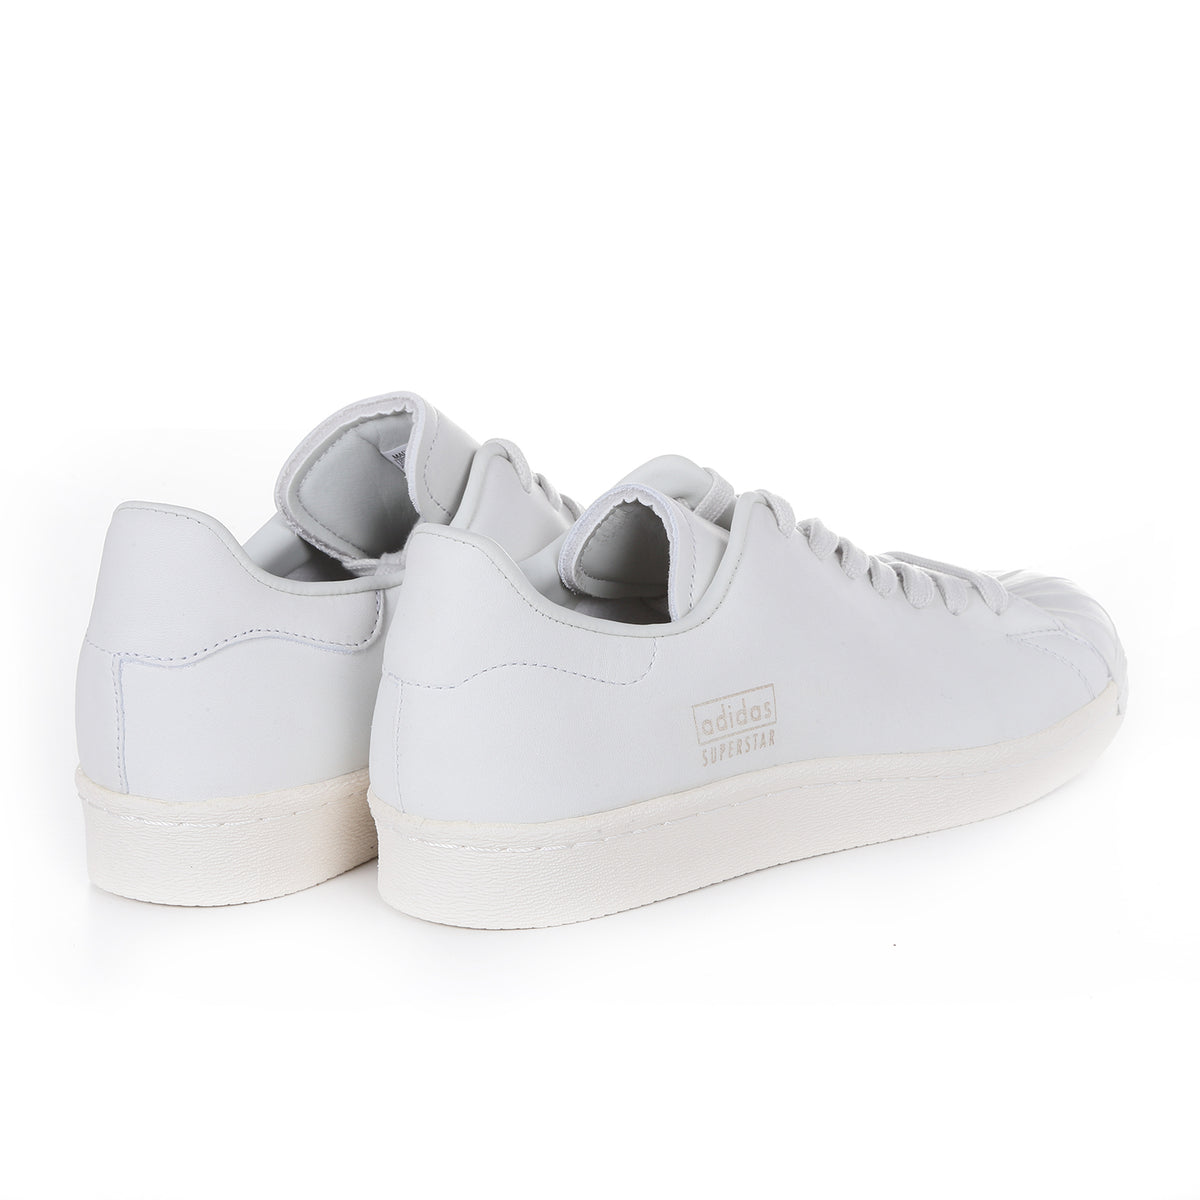 SUPERSTARS 80'S CLEAN - CRYSTAL WHITE/OFF WHITE